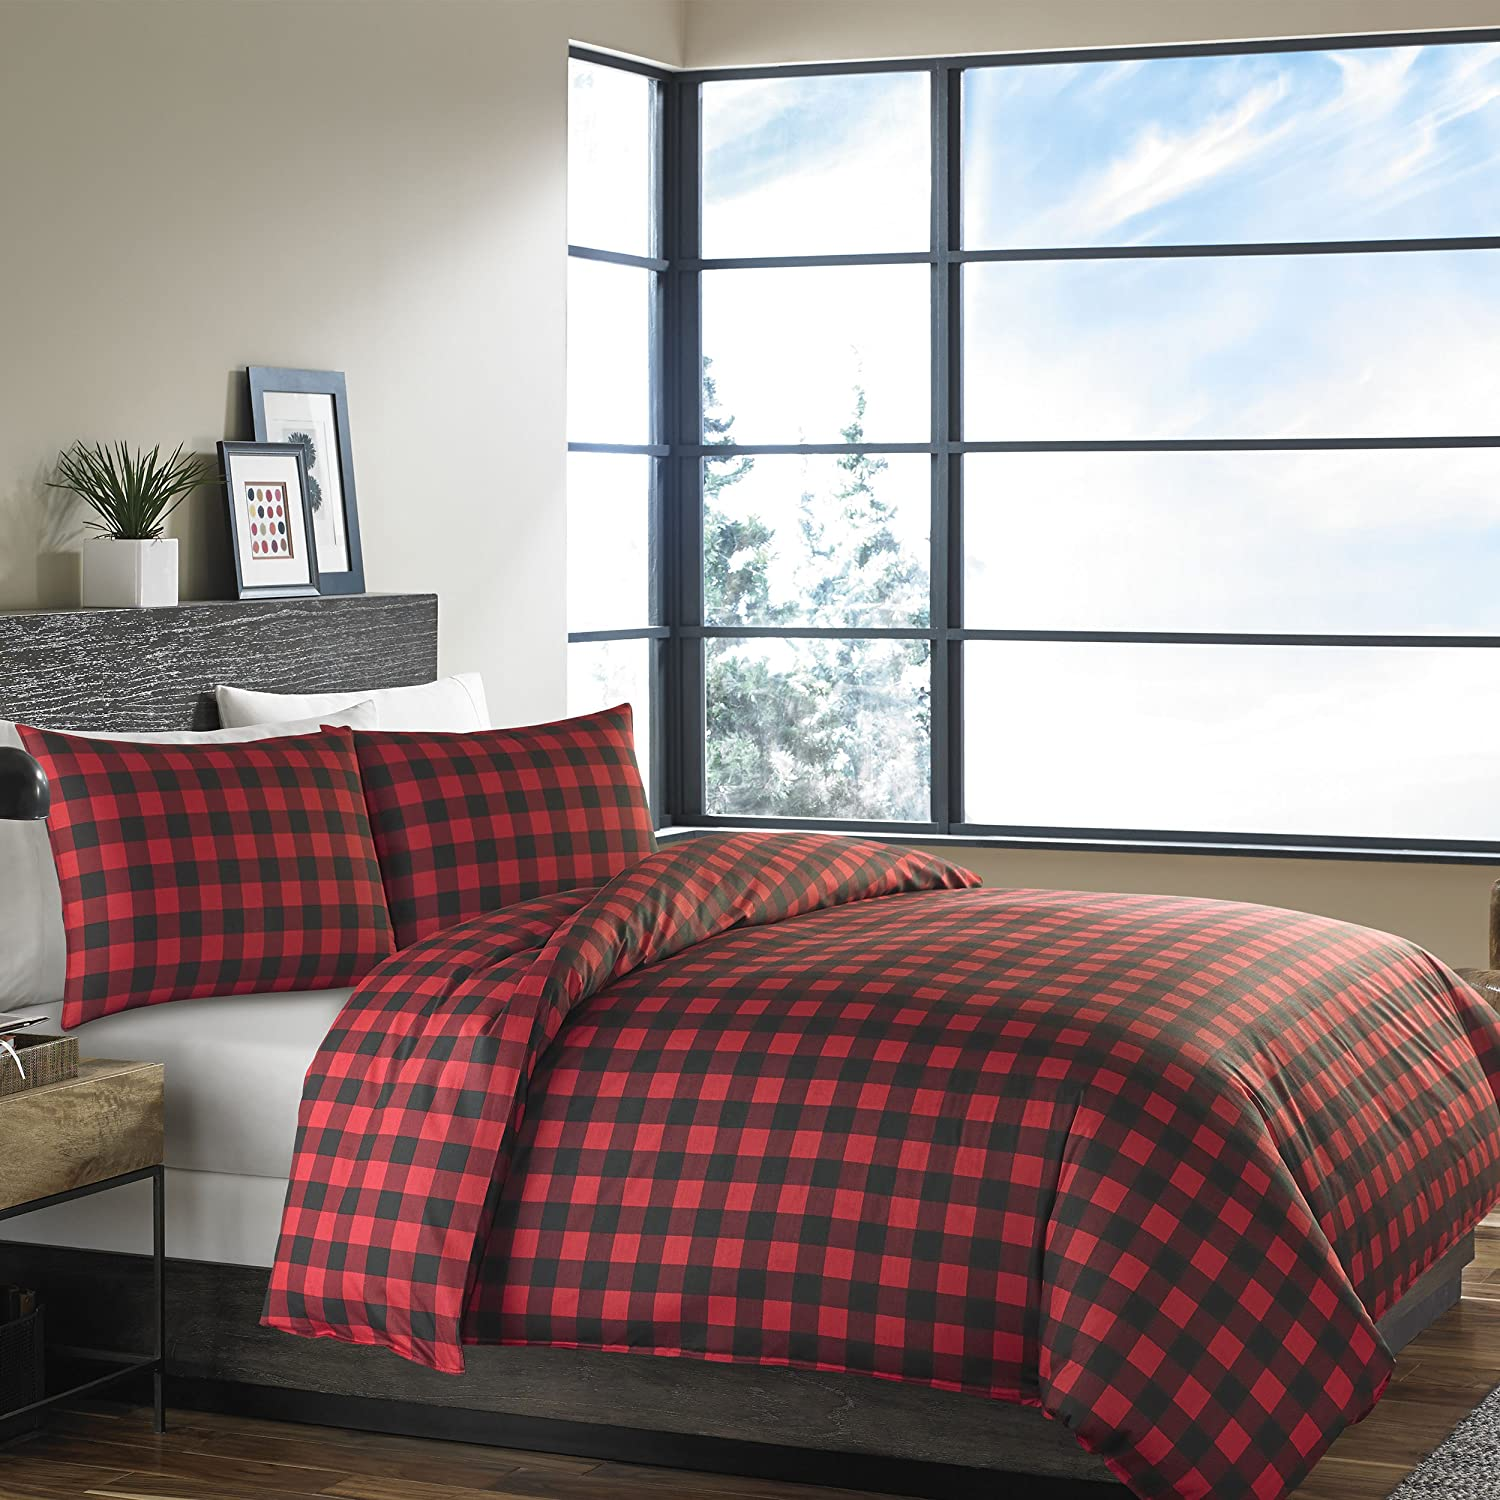 ideas furniture plaid inspirational cabin sheets red flannels of design flannel best and home moose wallpaper pinterest on images comforter unique queen new set